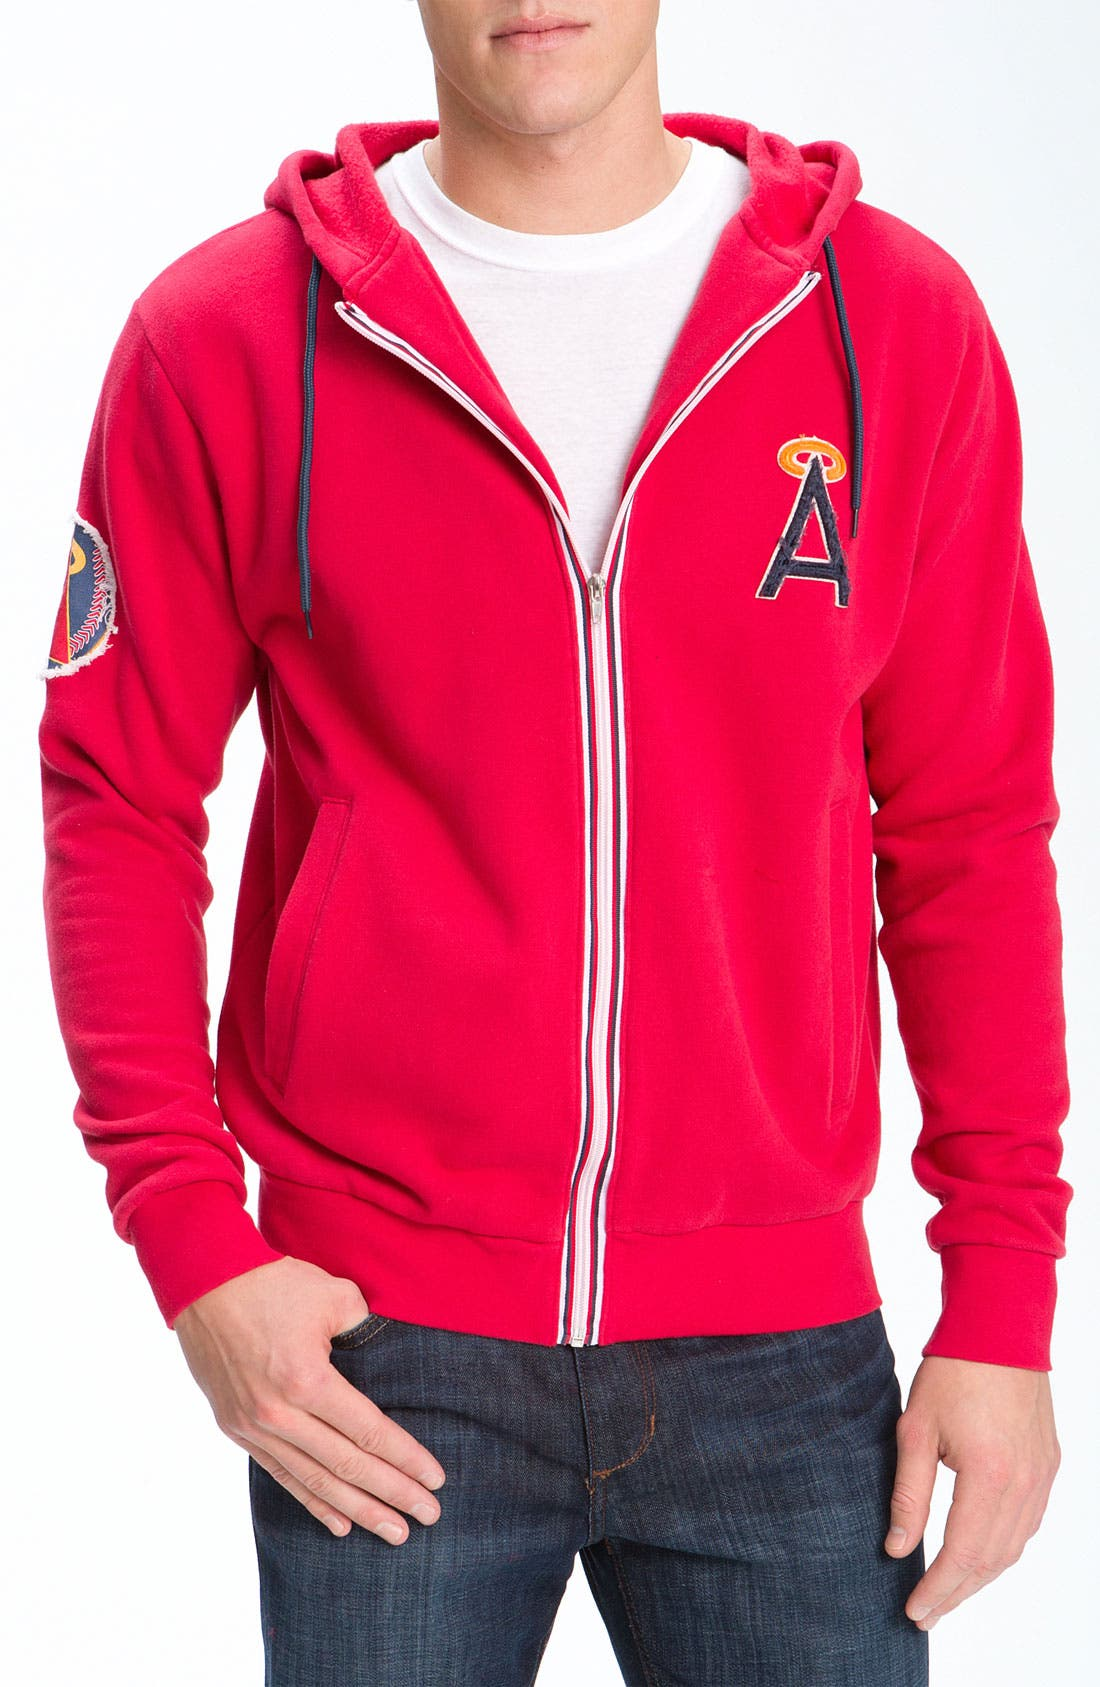 Alternate Image 1 Selected - Wright & Ditson 'Los Angeles Angels of Anaheim' Hoodie